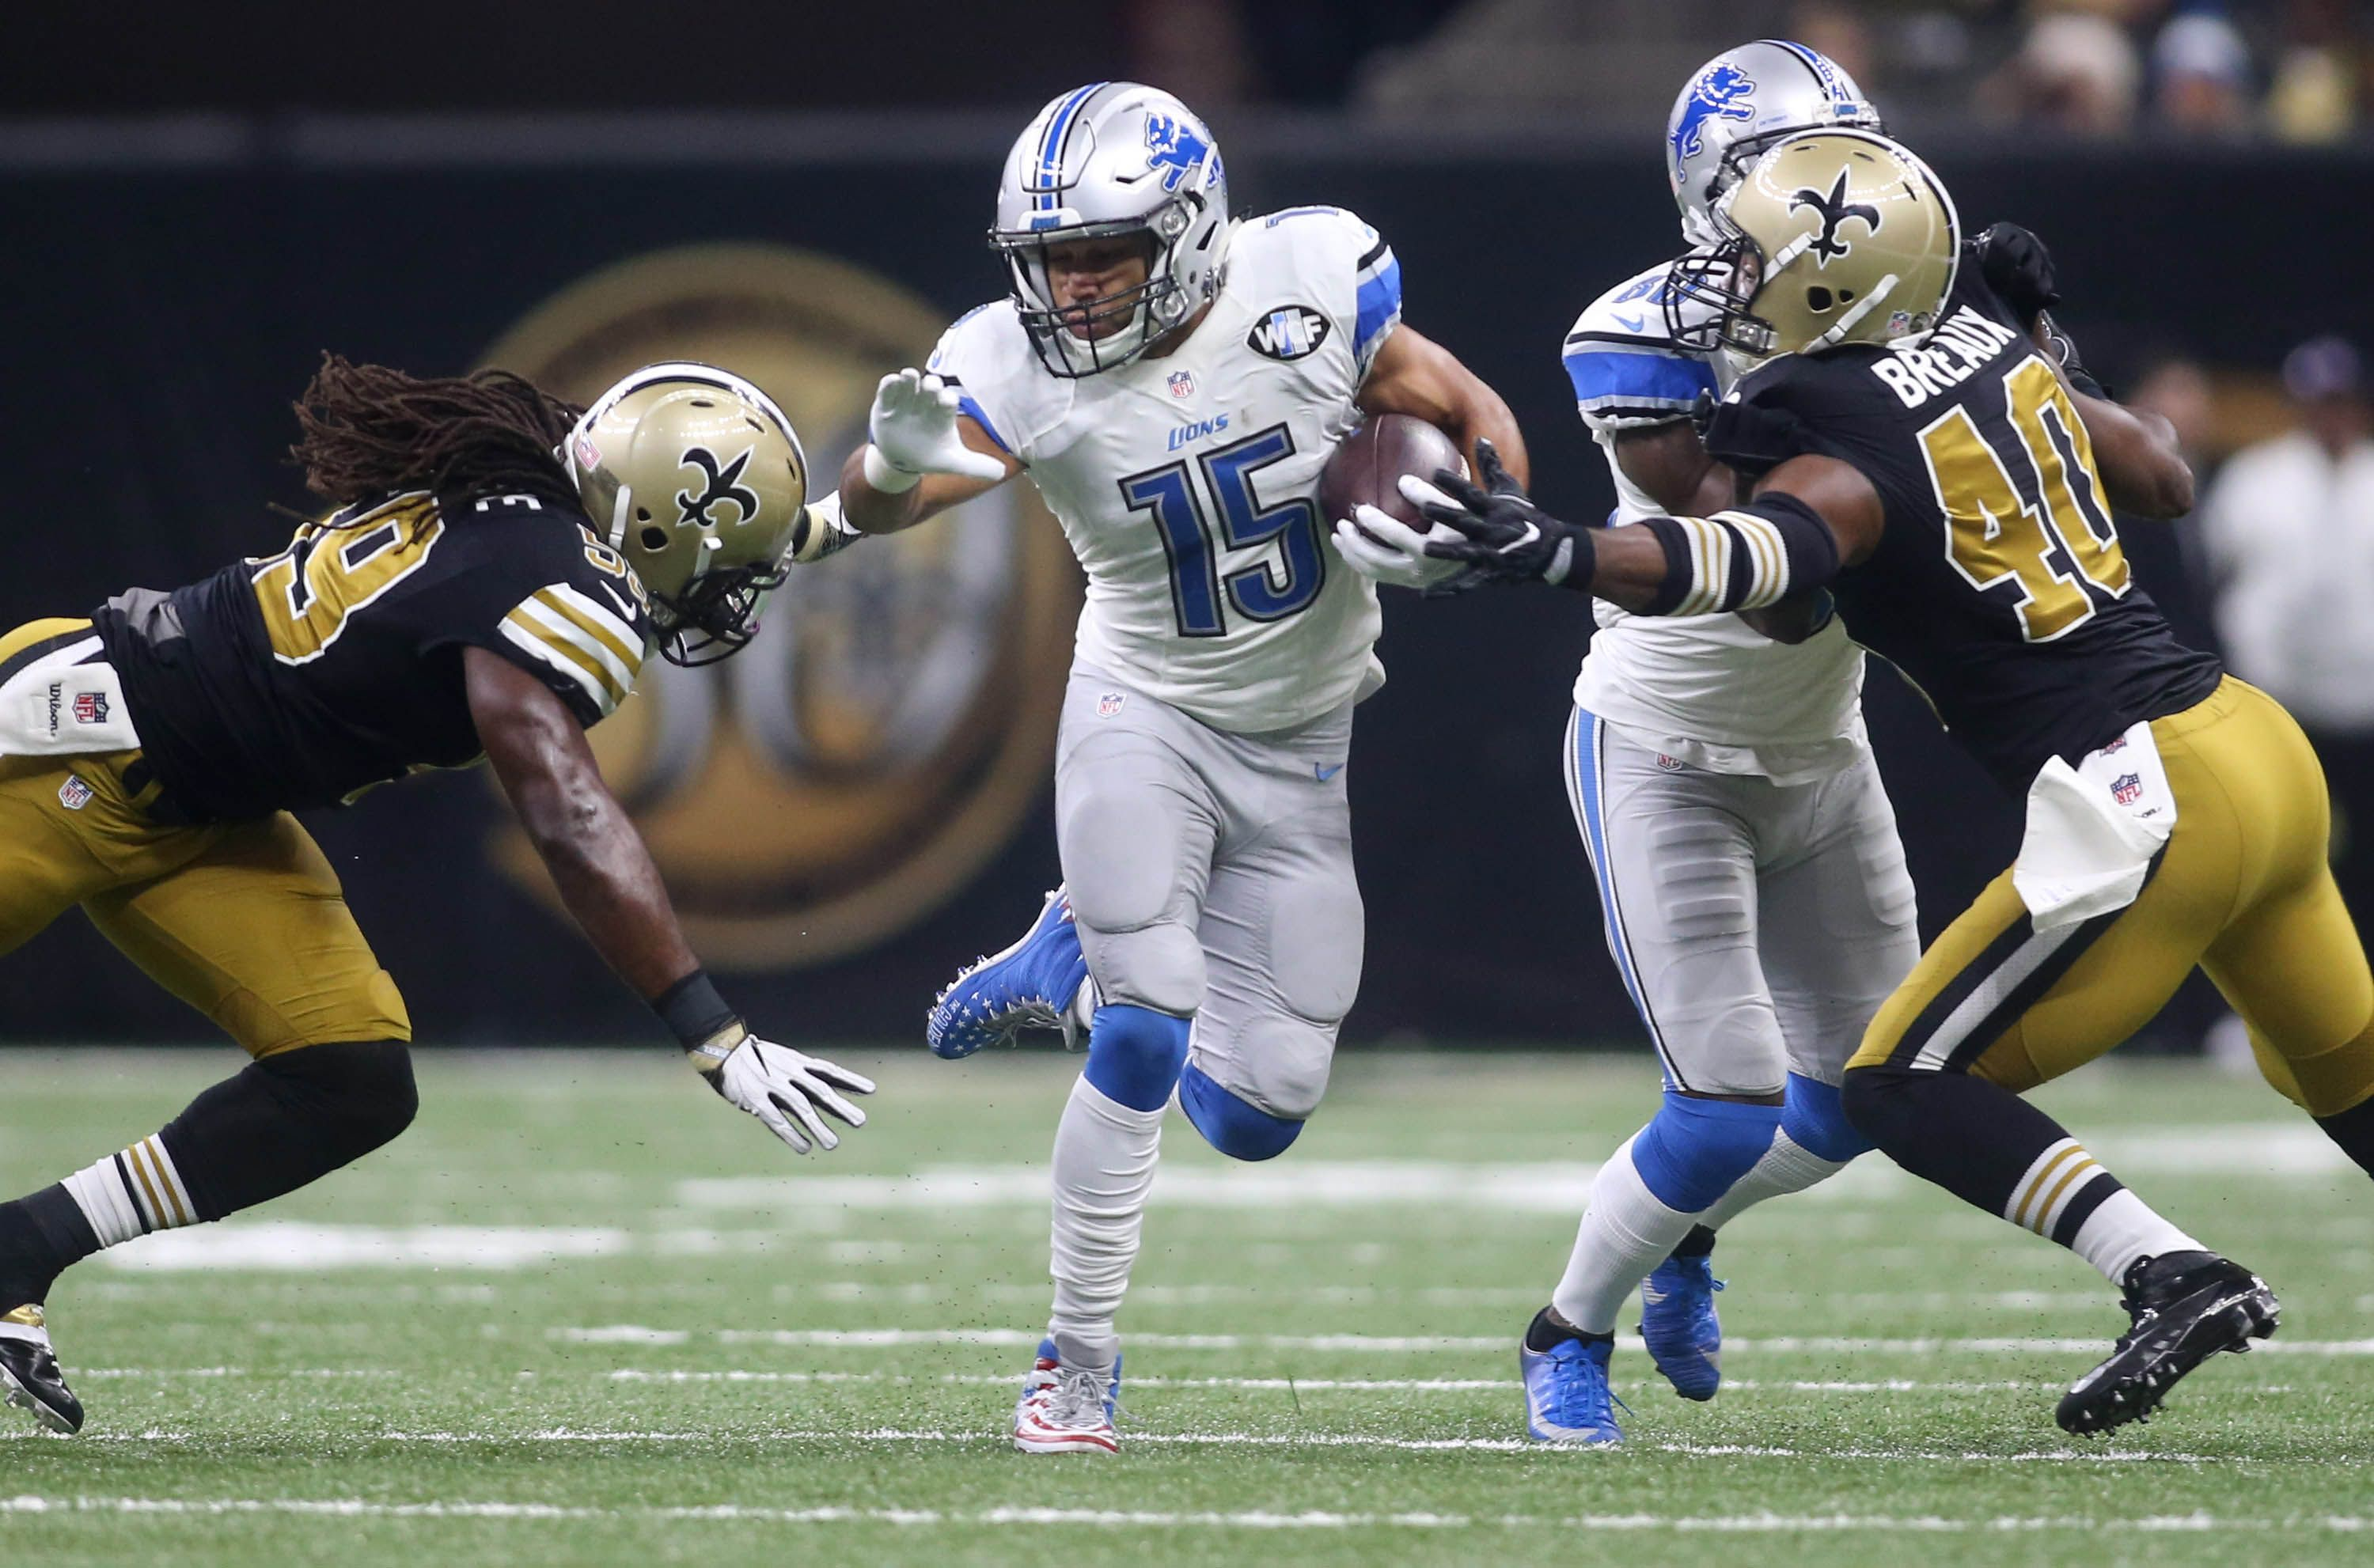 detroit_lions_at_new_orleans_saints_87171670.jpg